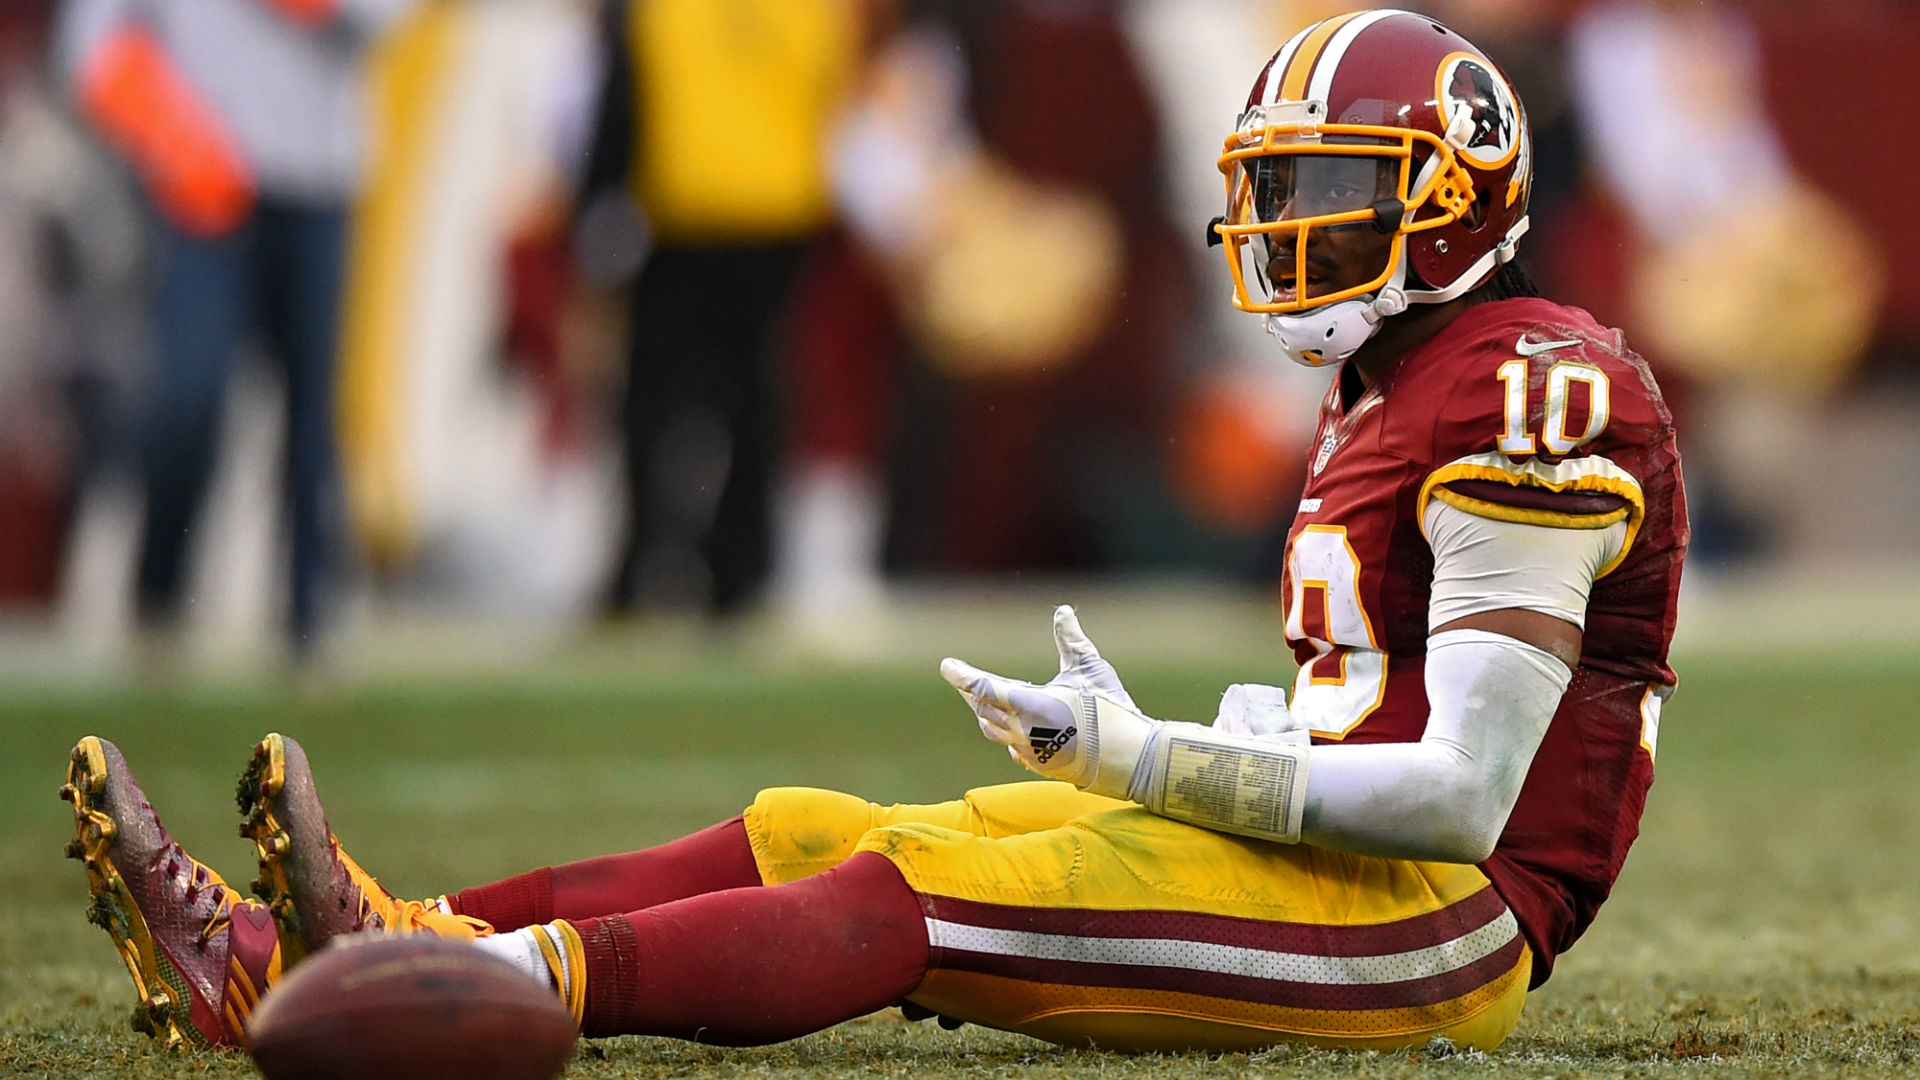 Mark Brunell doesn't believe Robert Griffin III will succeed in the NFL